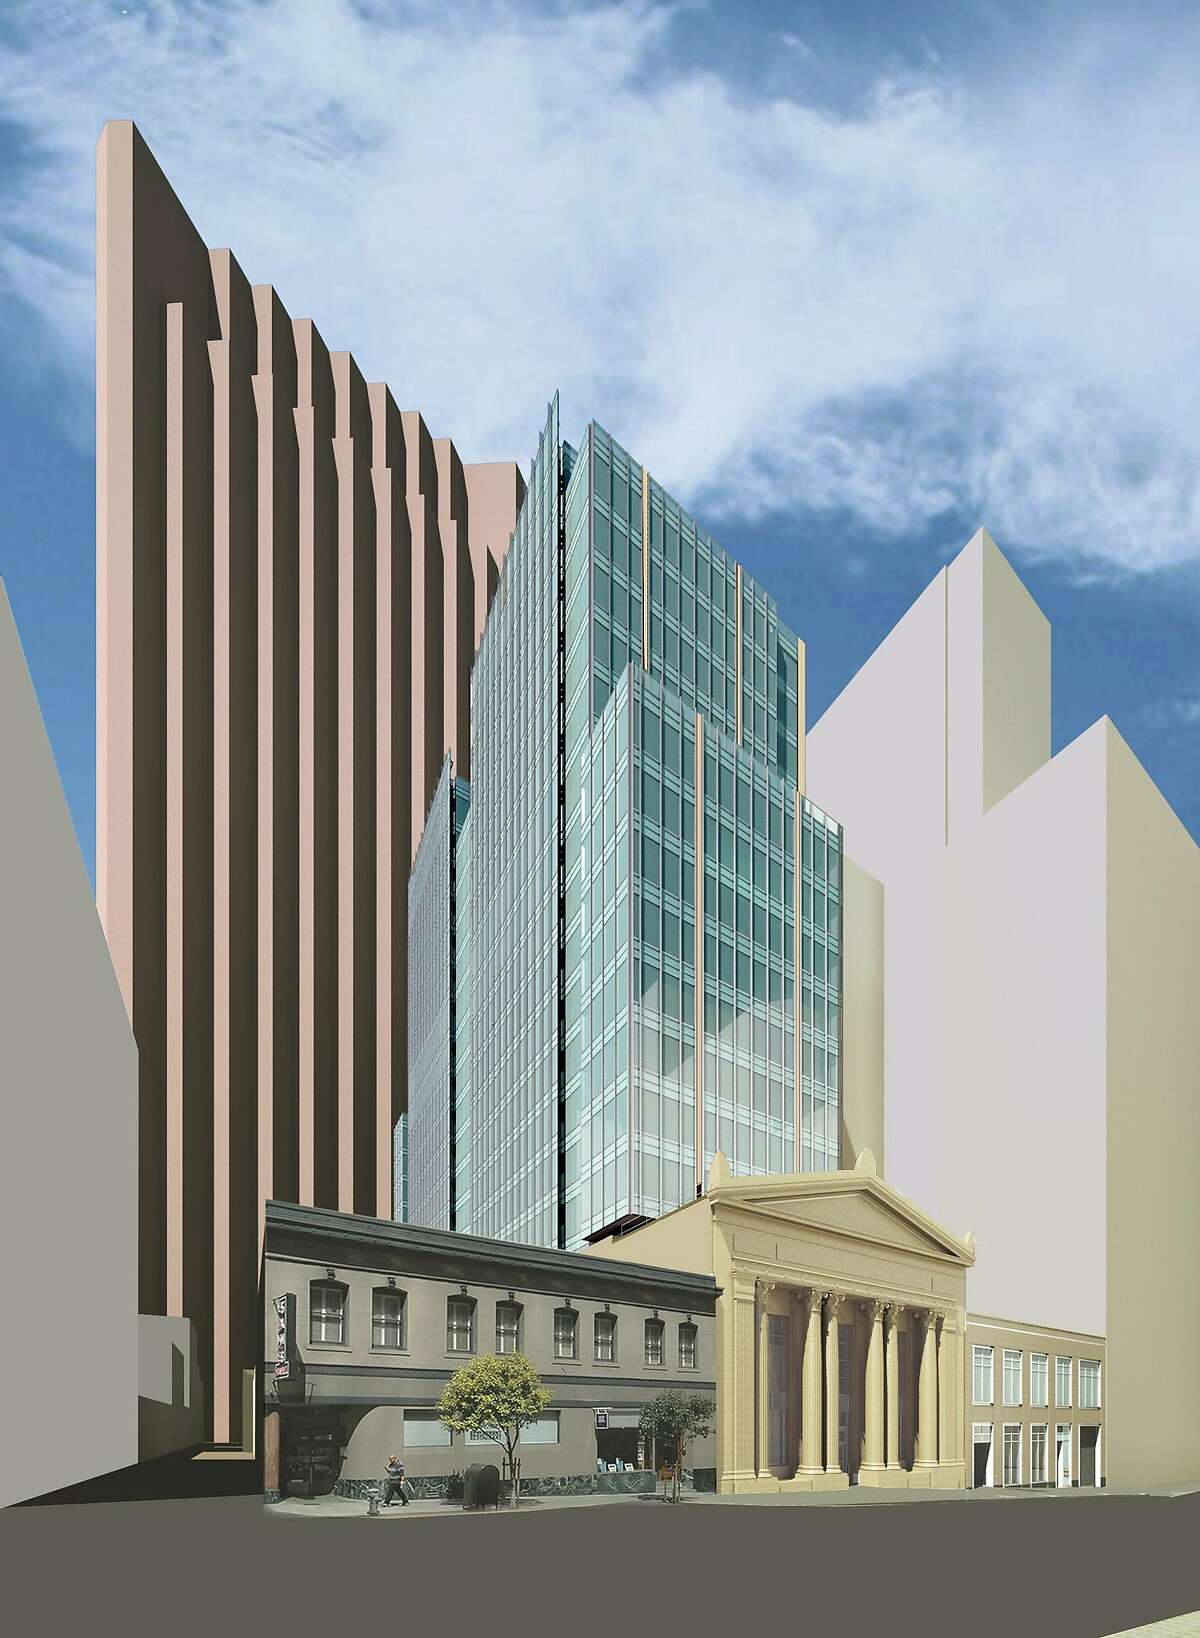 An architect's �rendering of the 350 Bush project as it will appear when completed, with the restored San Francisco Mining Exchange south of a 19-story tower that's now under construction. On the west is Belden Alley, and the Russ Building is on the right